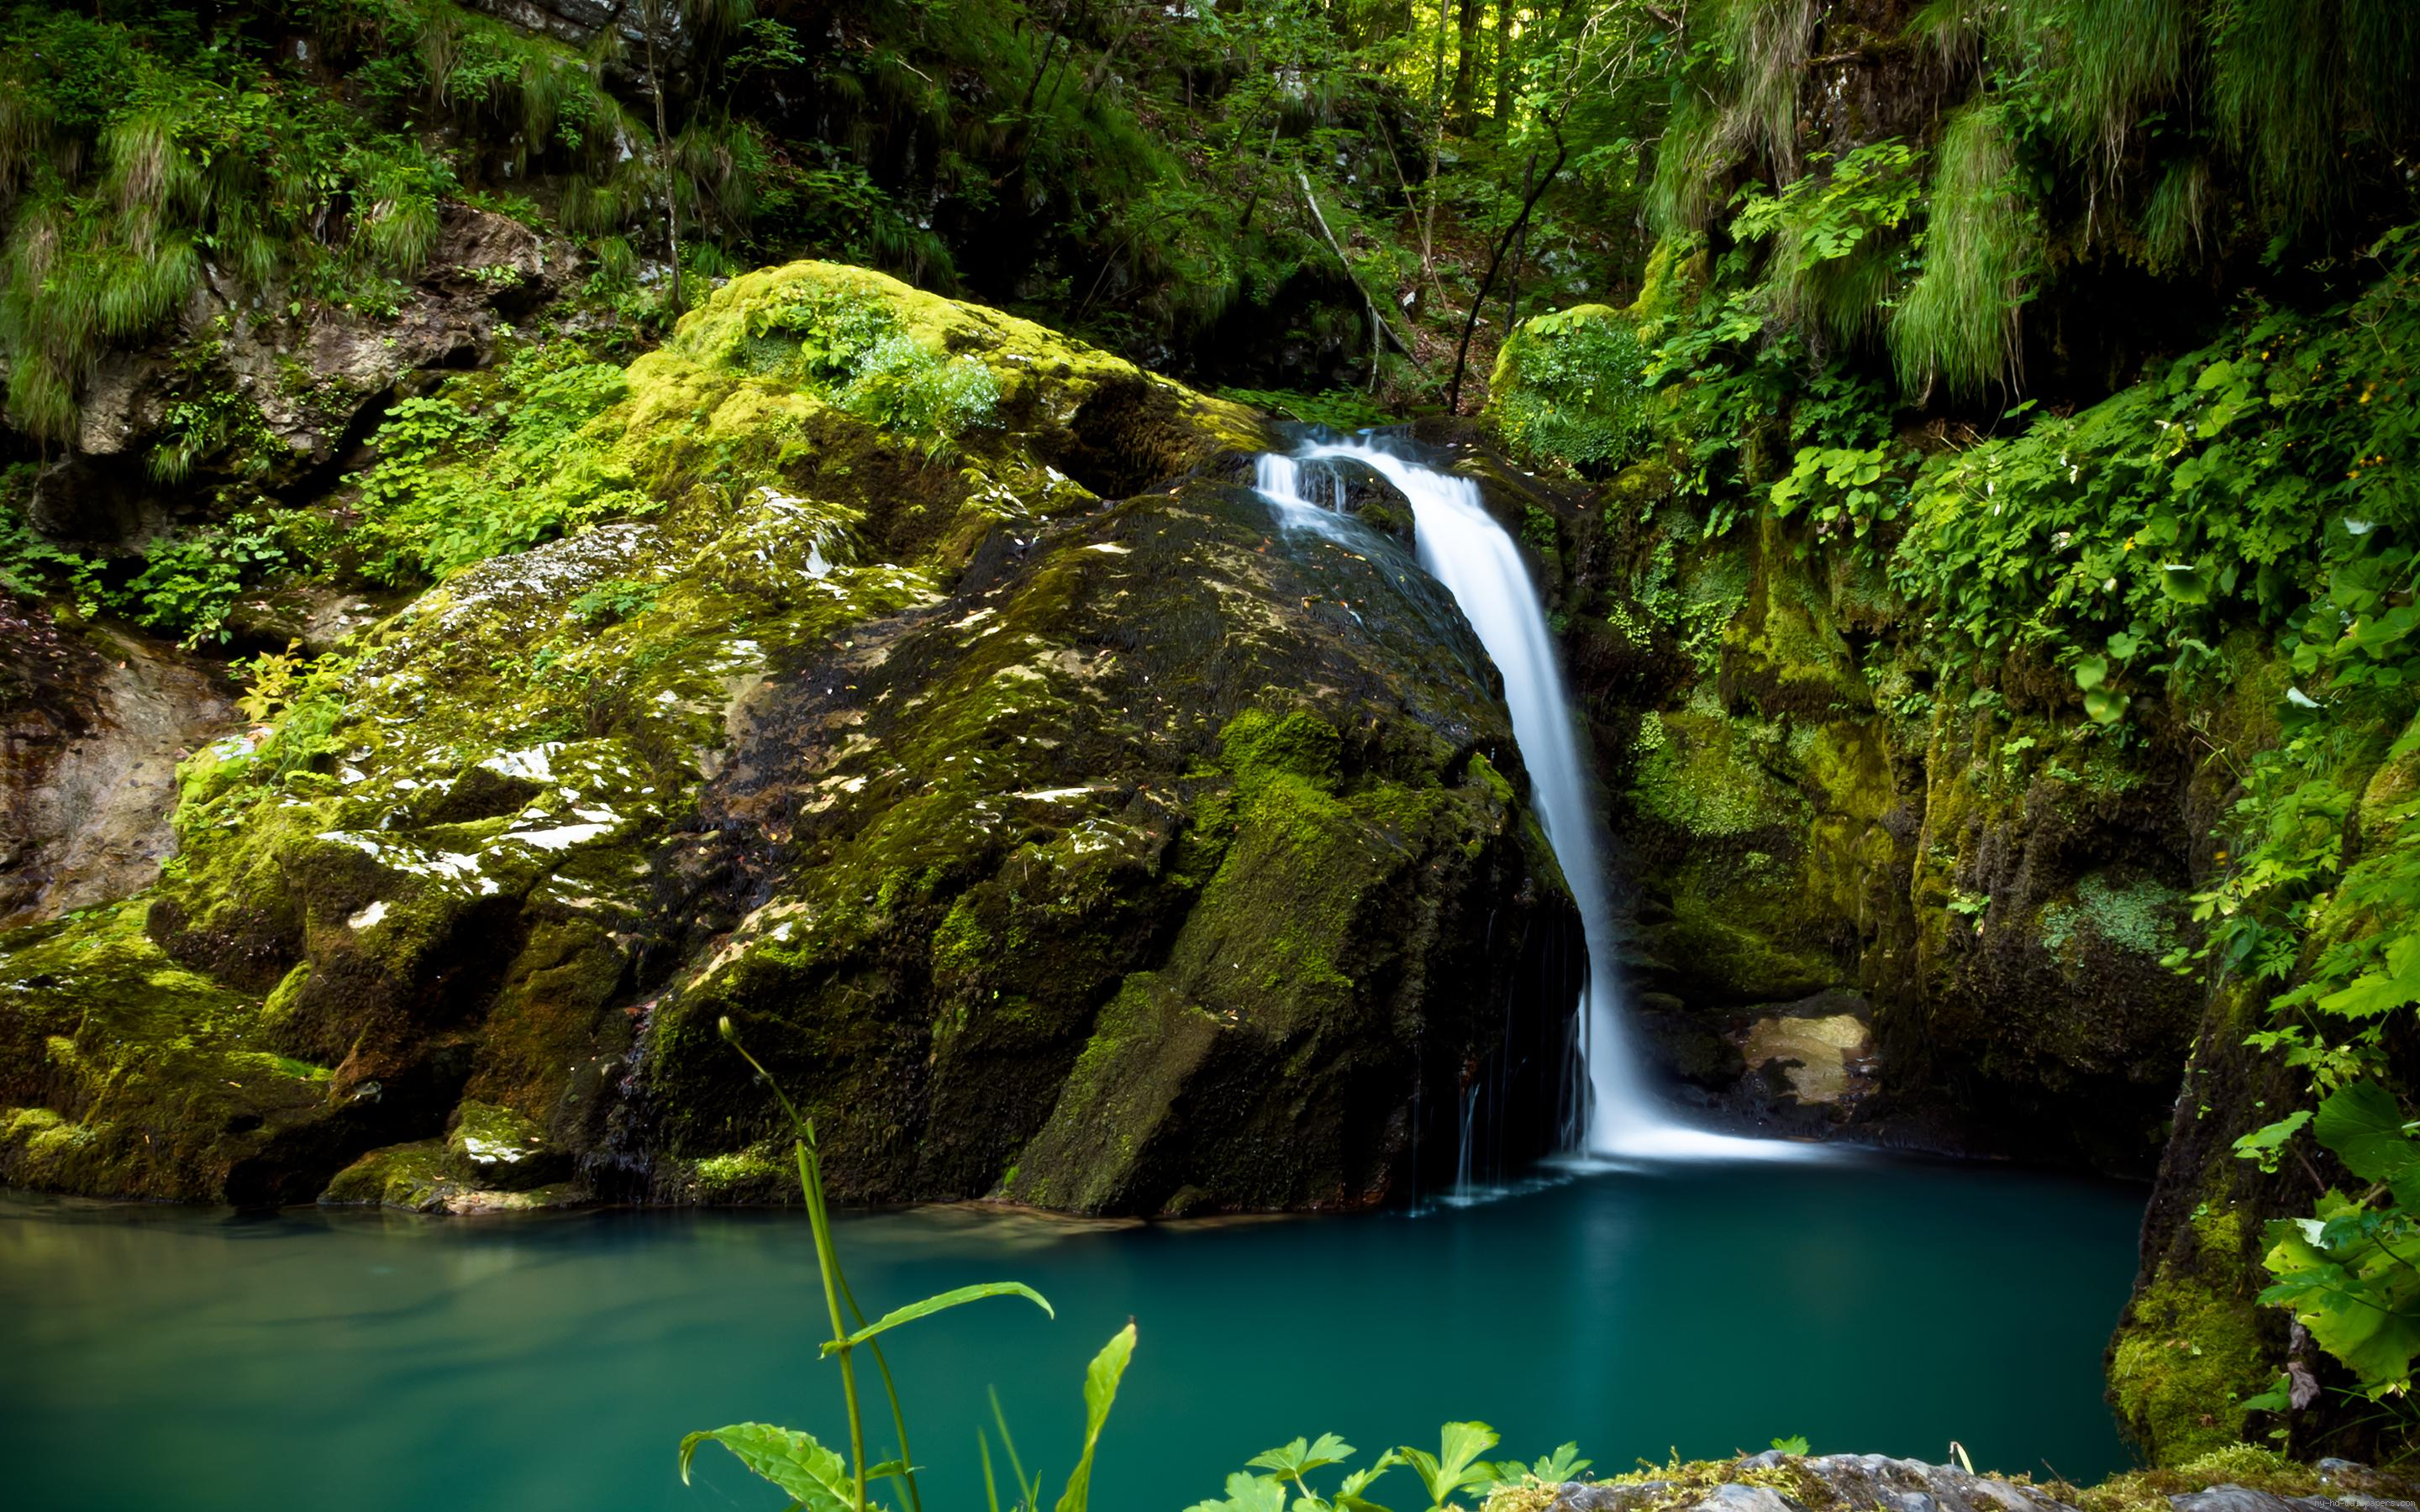 Rainforest Small Stream Waterfall Blue Water Large Rocks With Moss Widescreen Free Download